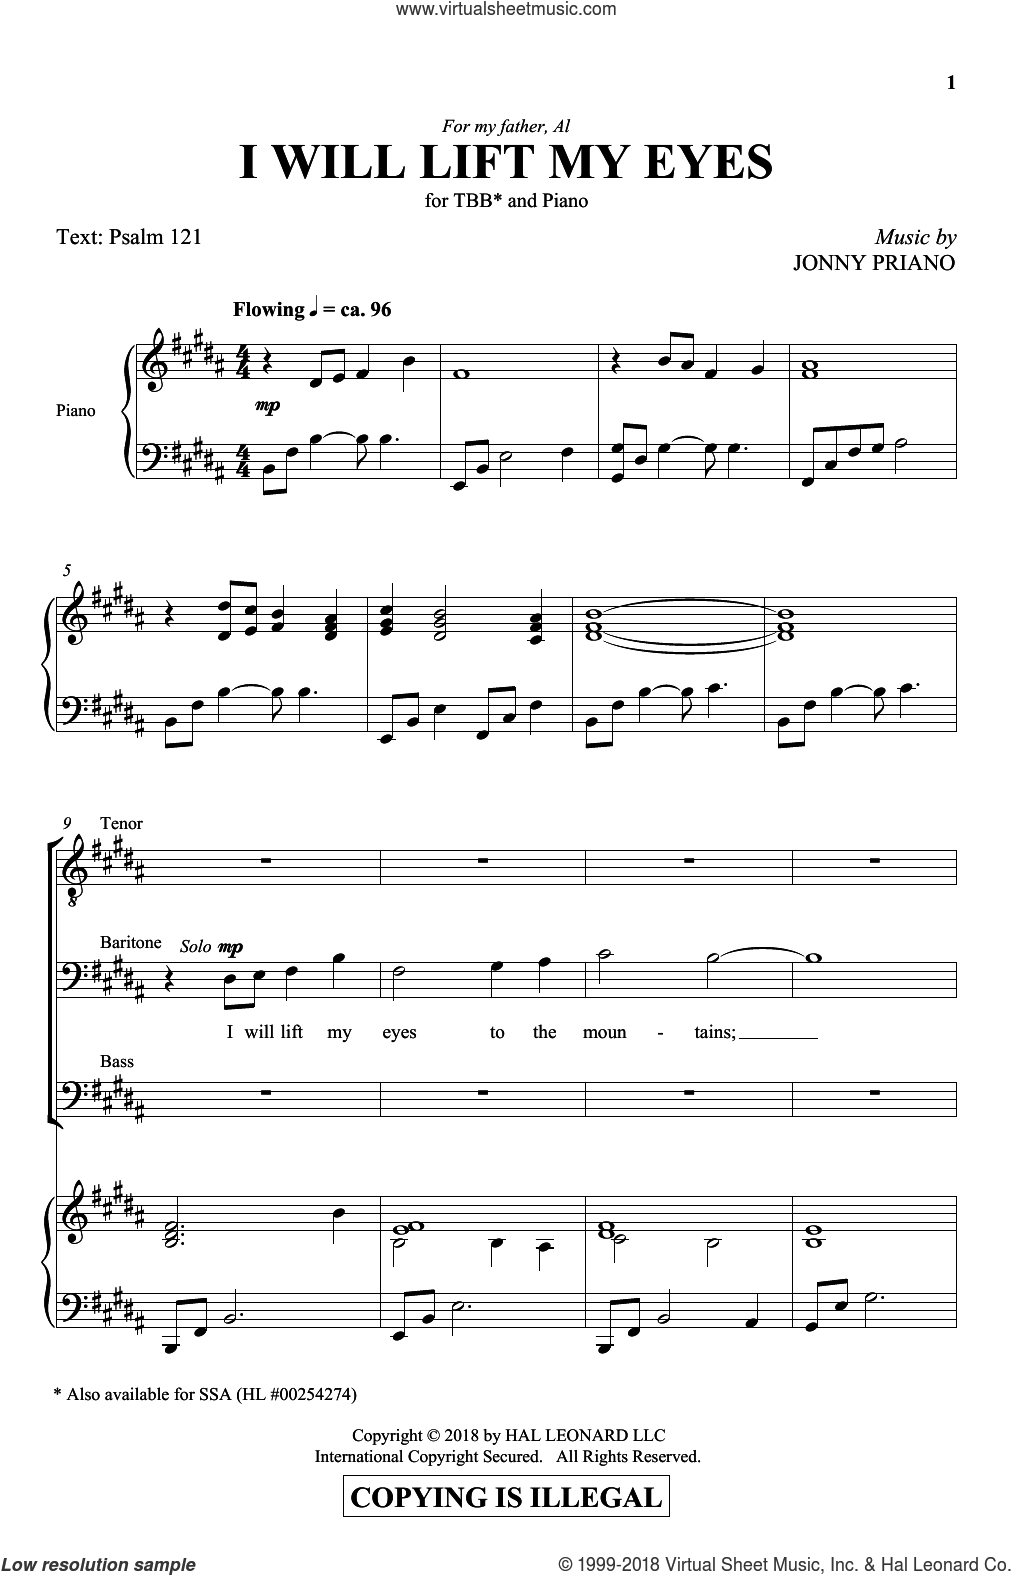 I Will Lift My Eyes sheet music for choir (TBB: tenor, bass) by Jonny Priano and Miscellaneous, intermediate skill level